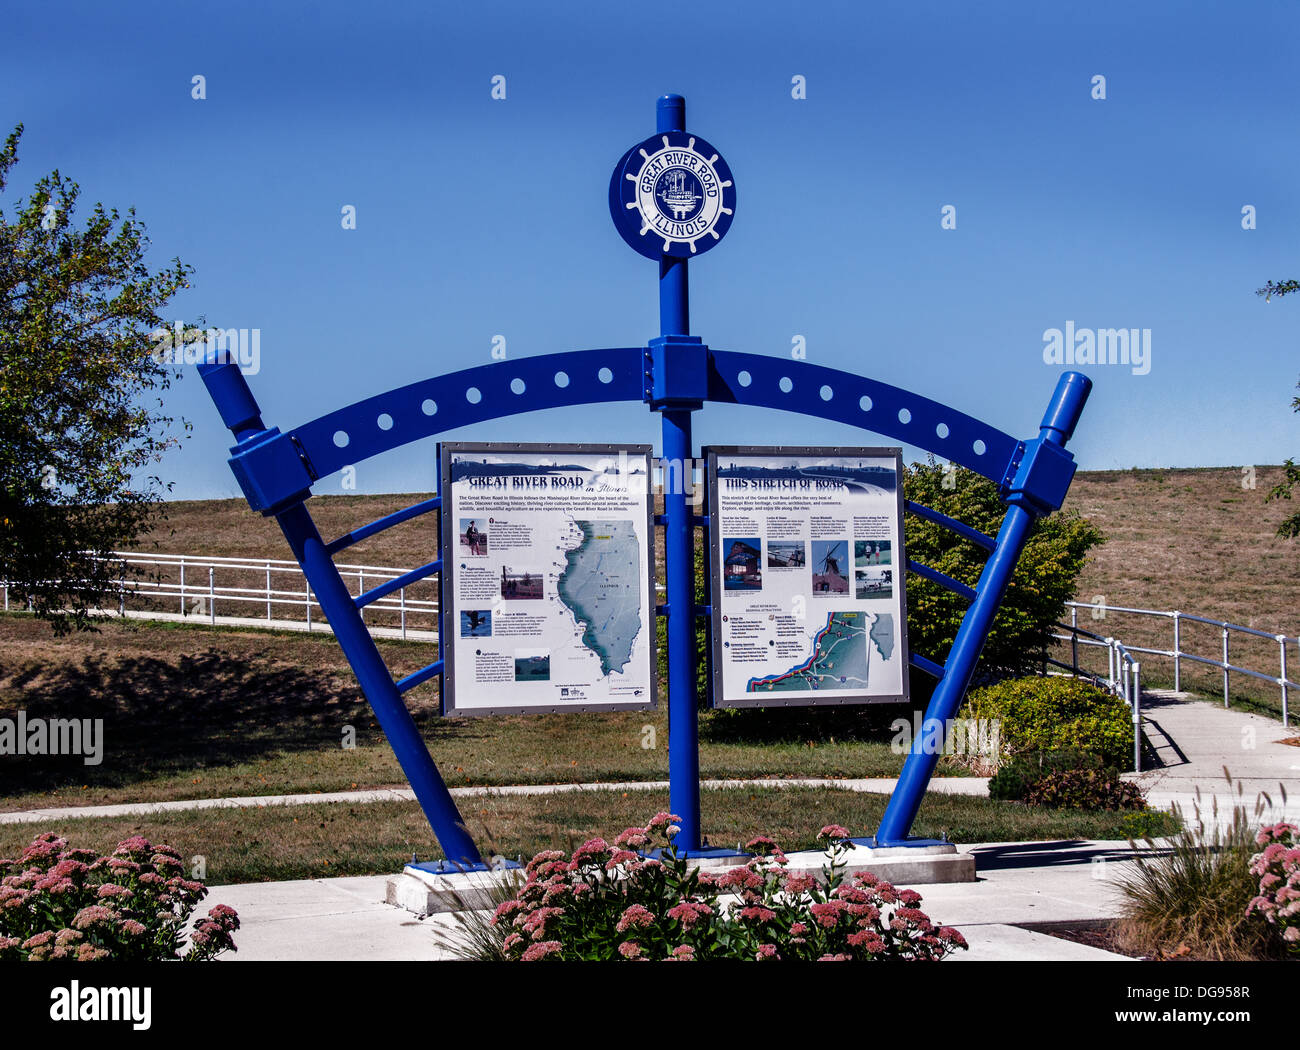 The Great River Road kiosk  in Fulton, Illinois, a town along the Lincoln Highway - Stock Image